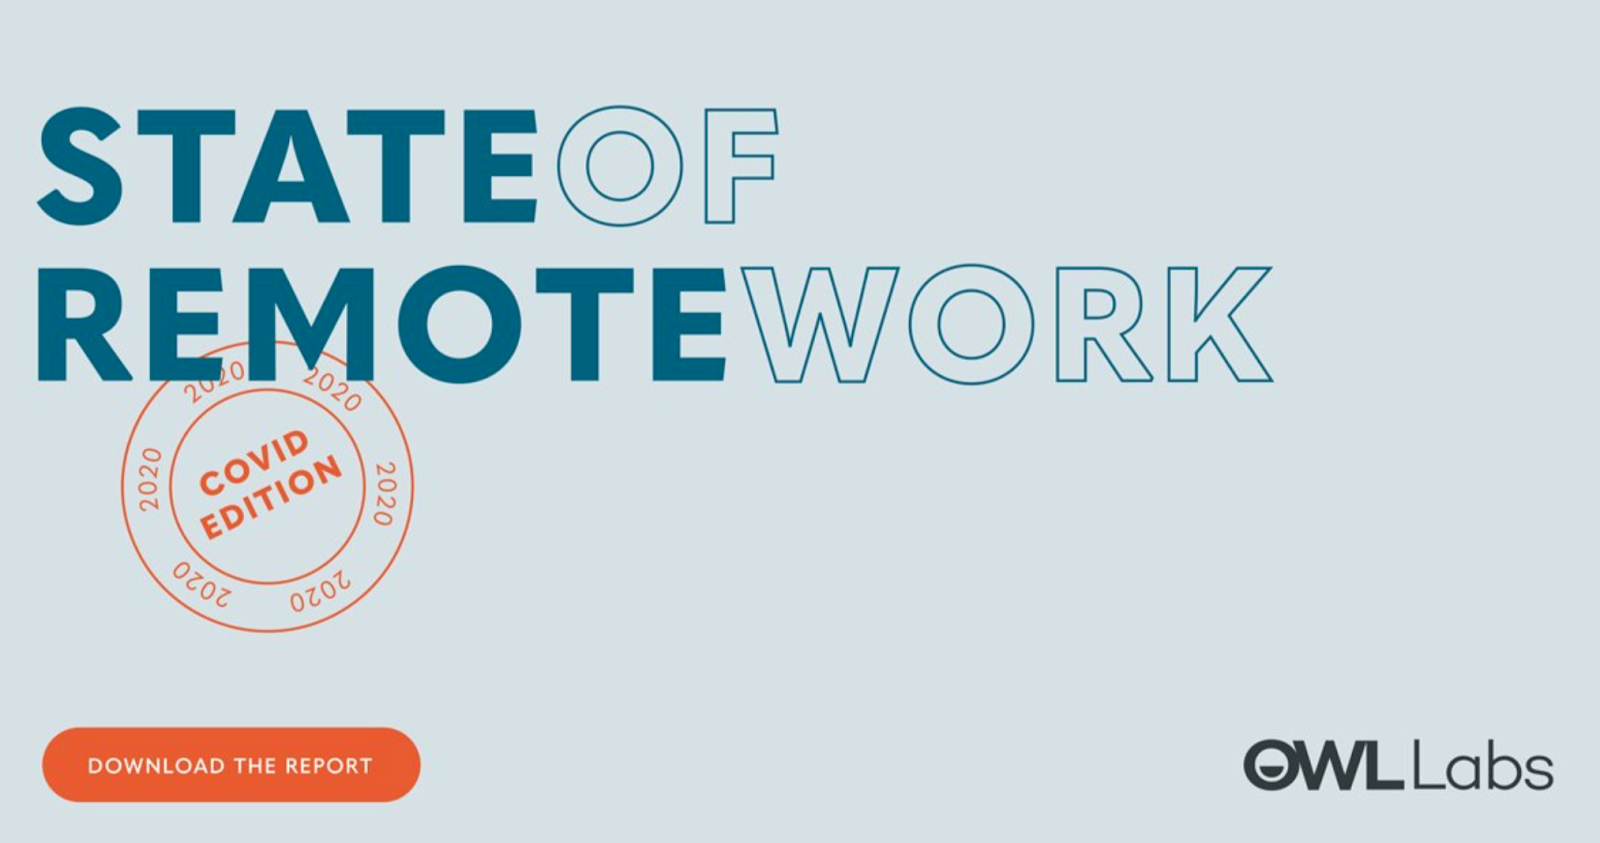 owl labs state of remote work 2020